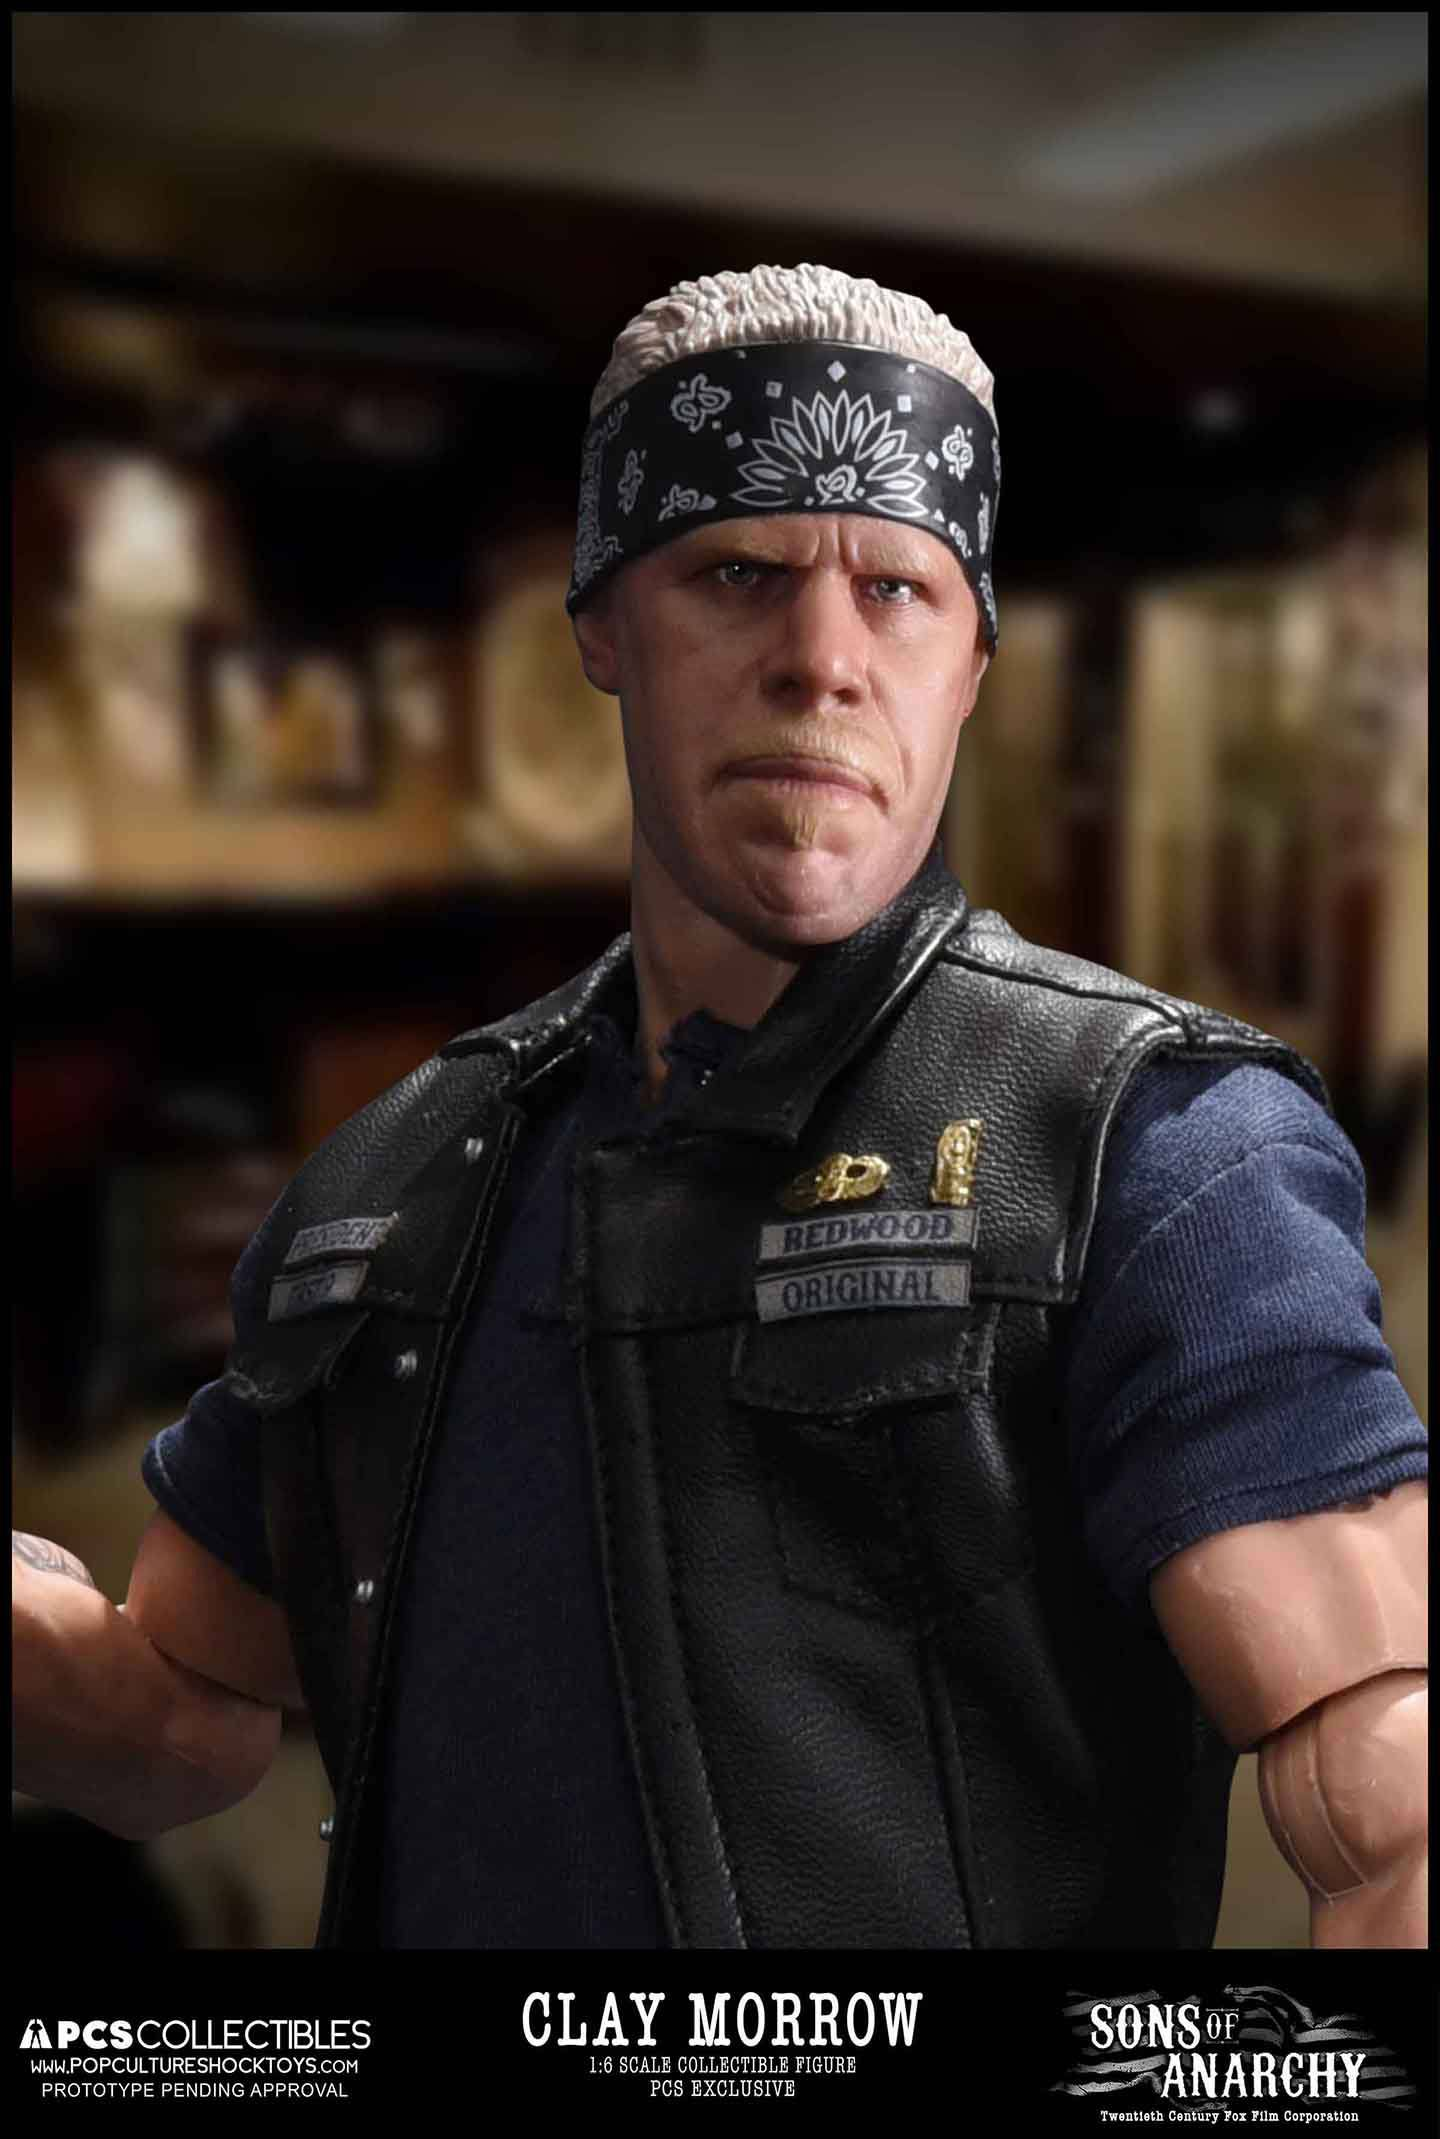 sons of anarchy action figure 1 6 clay morrow exclusive 31. Black Bedroom Furniture Sets. Home Design Ideas